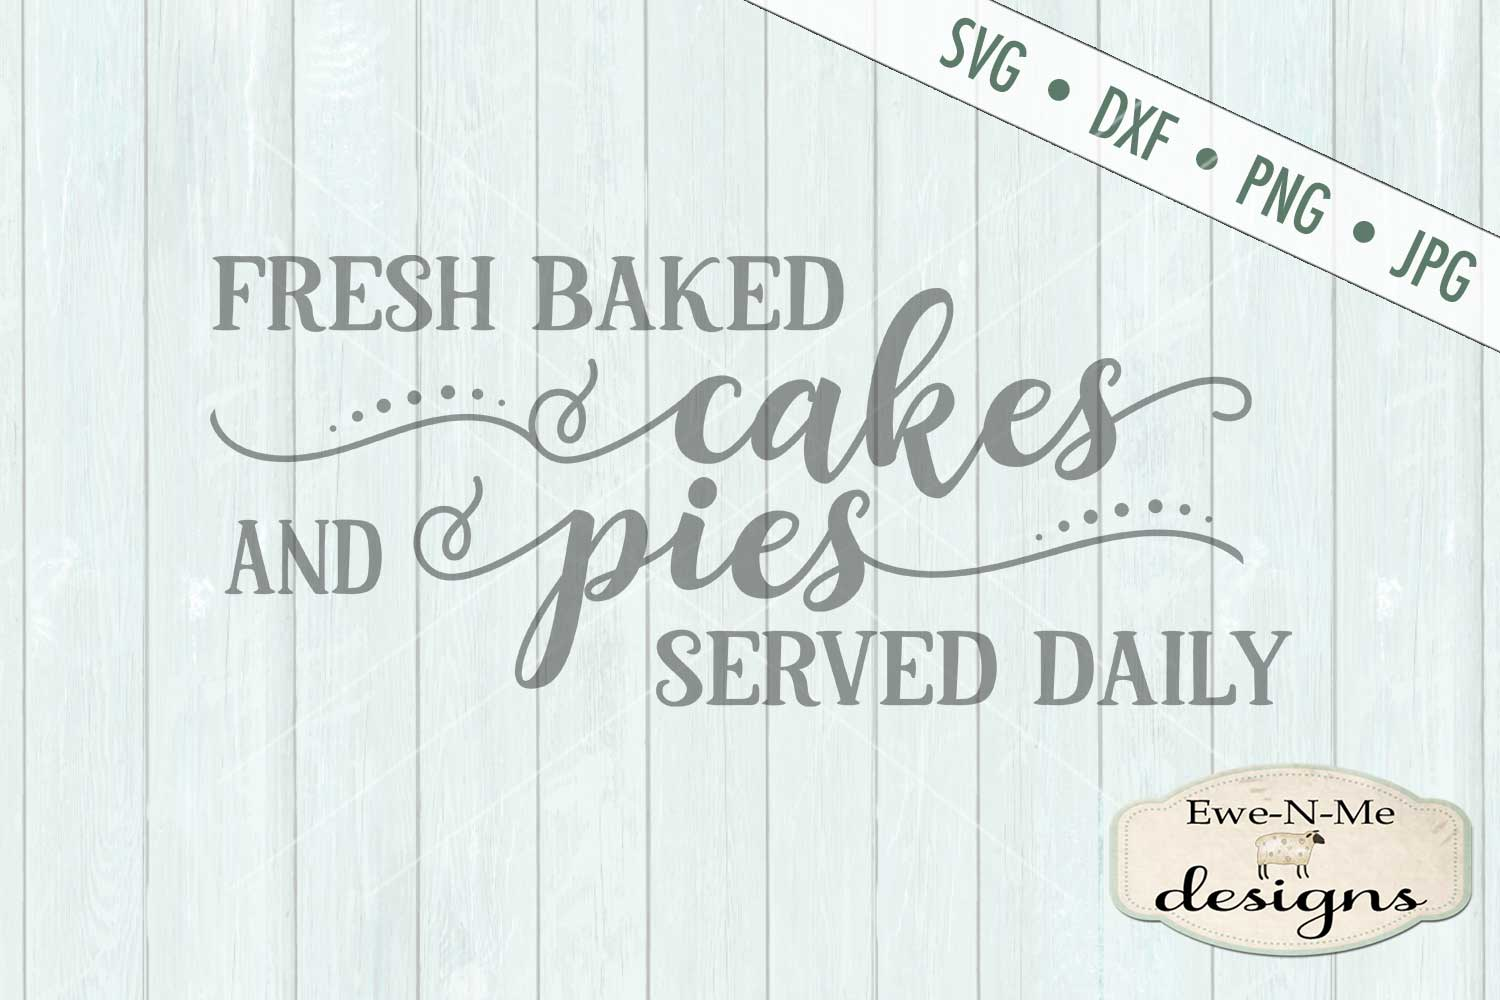 Fresh Baked Cakes Pies - Bakery - Kitchen - SVG DXF Files example image 2